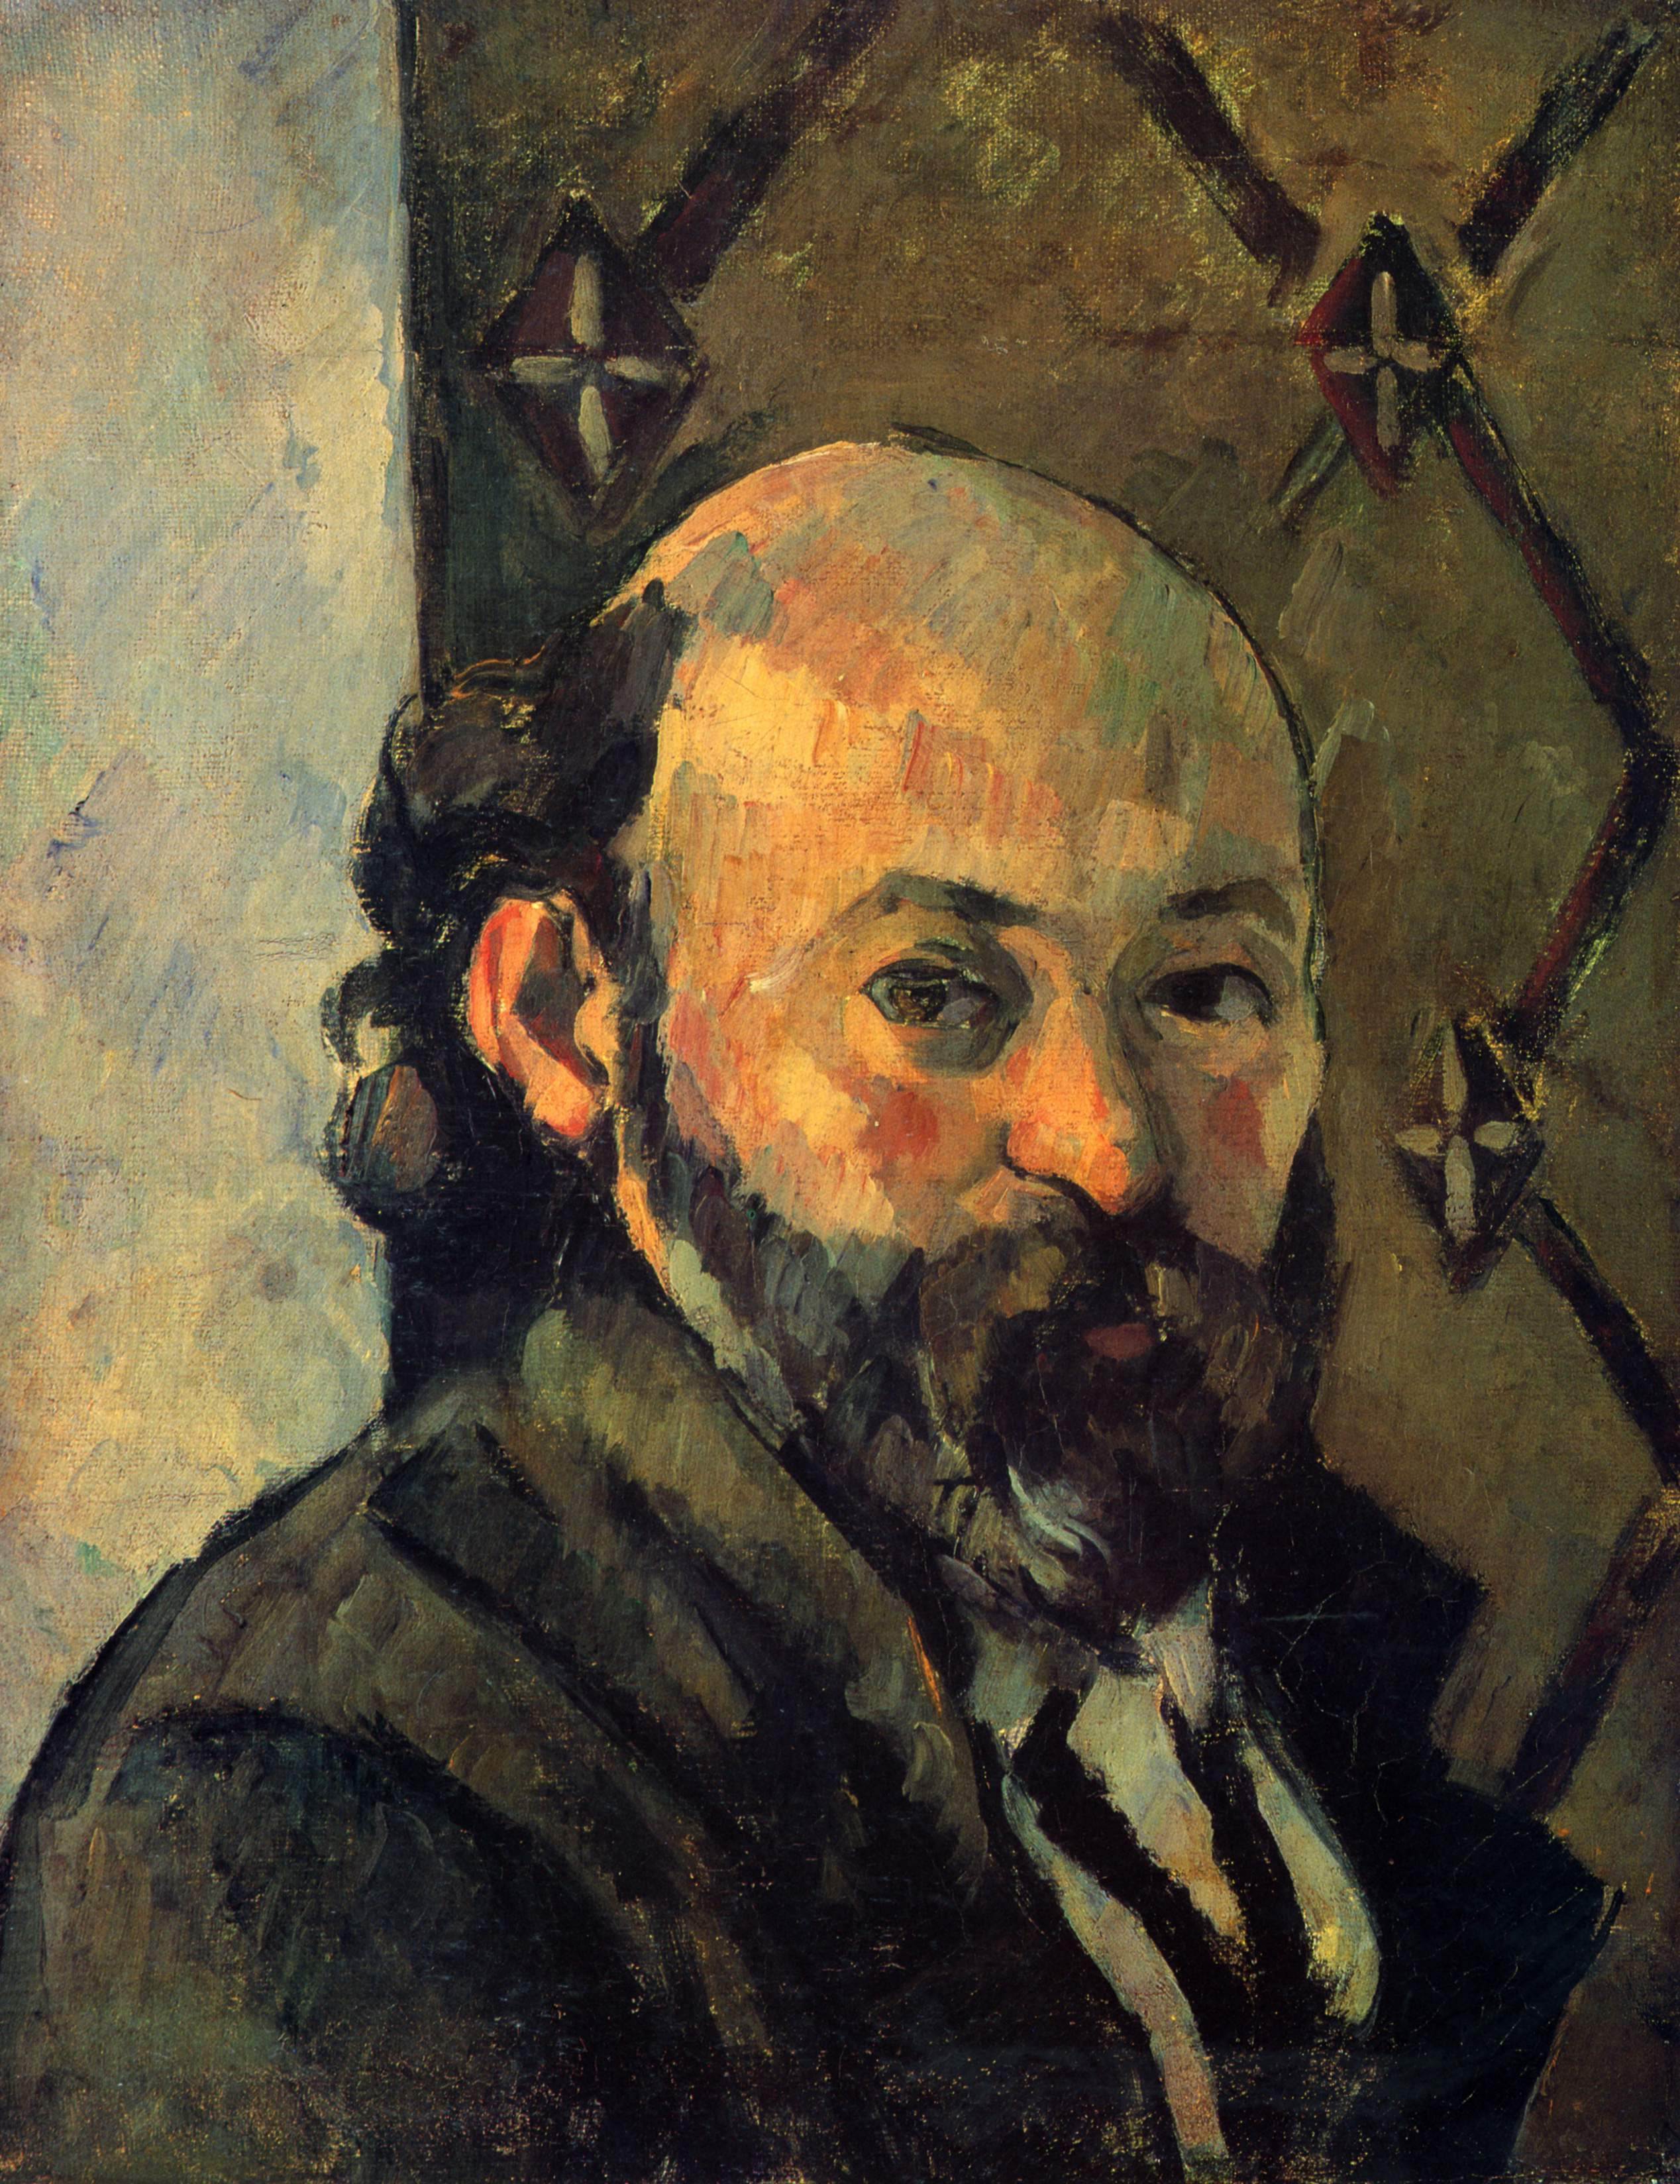 Self-portrait in front of olive wallpaper 1881